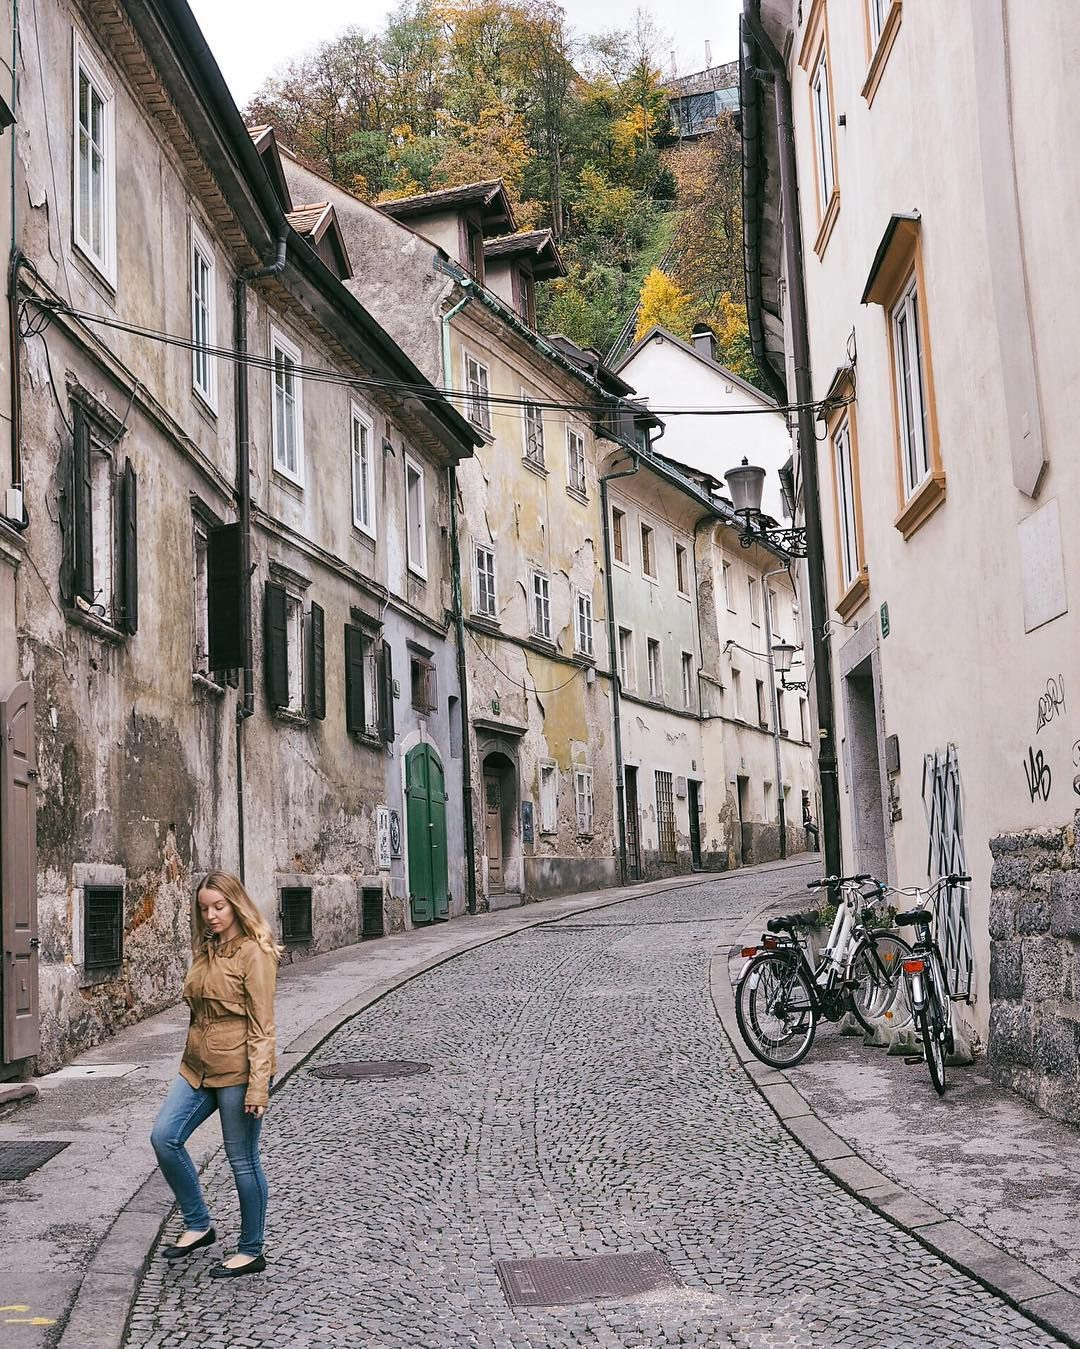 October Ljubljana Slovenia Next Was This Amazing Country And This Amazing City Some Of The Streets And Buildings Ljubljana Slovenia Travel Instagram